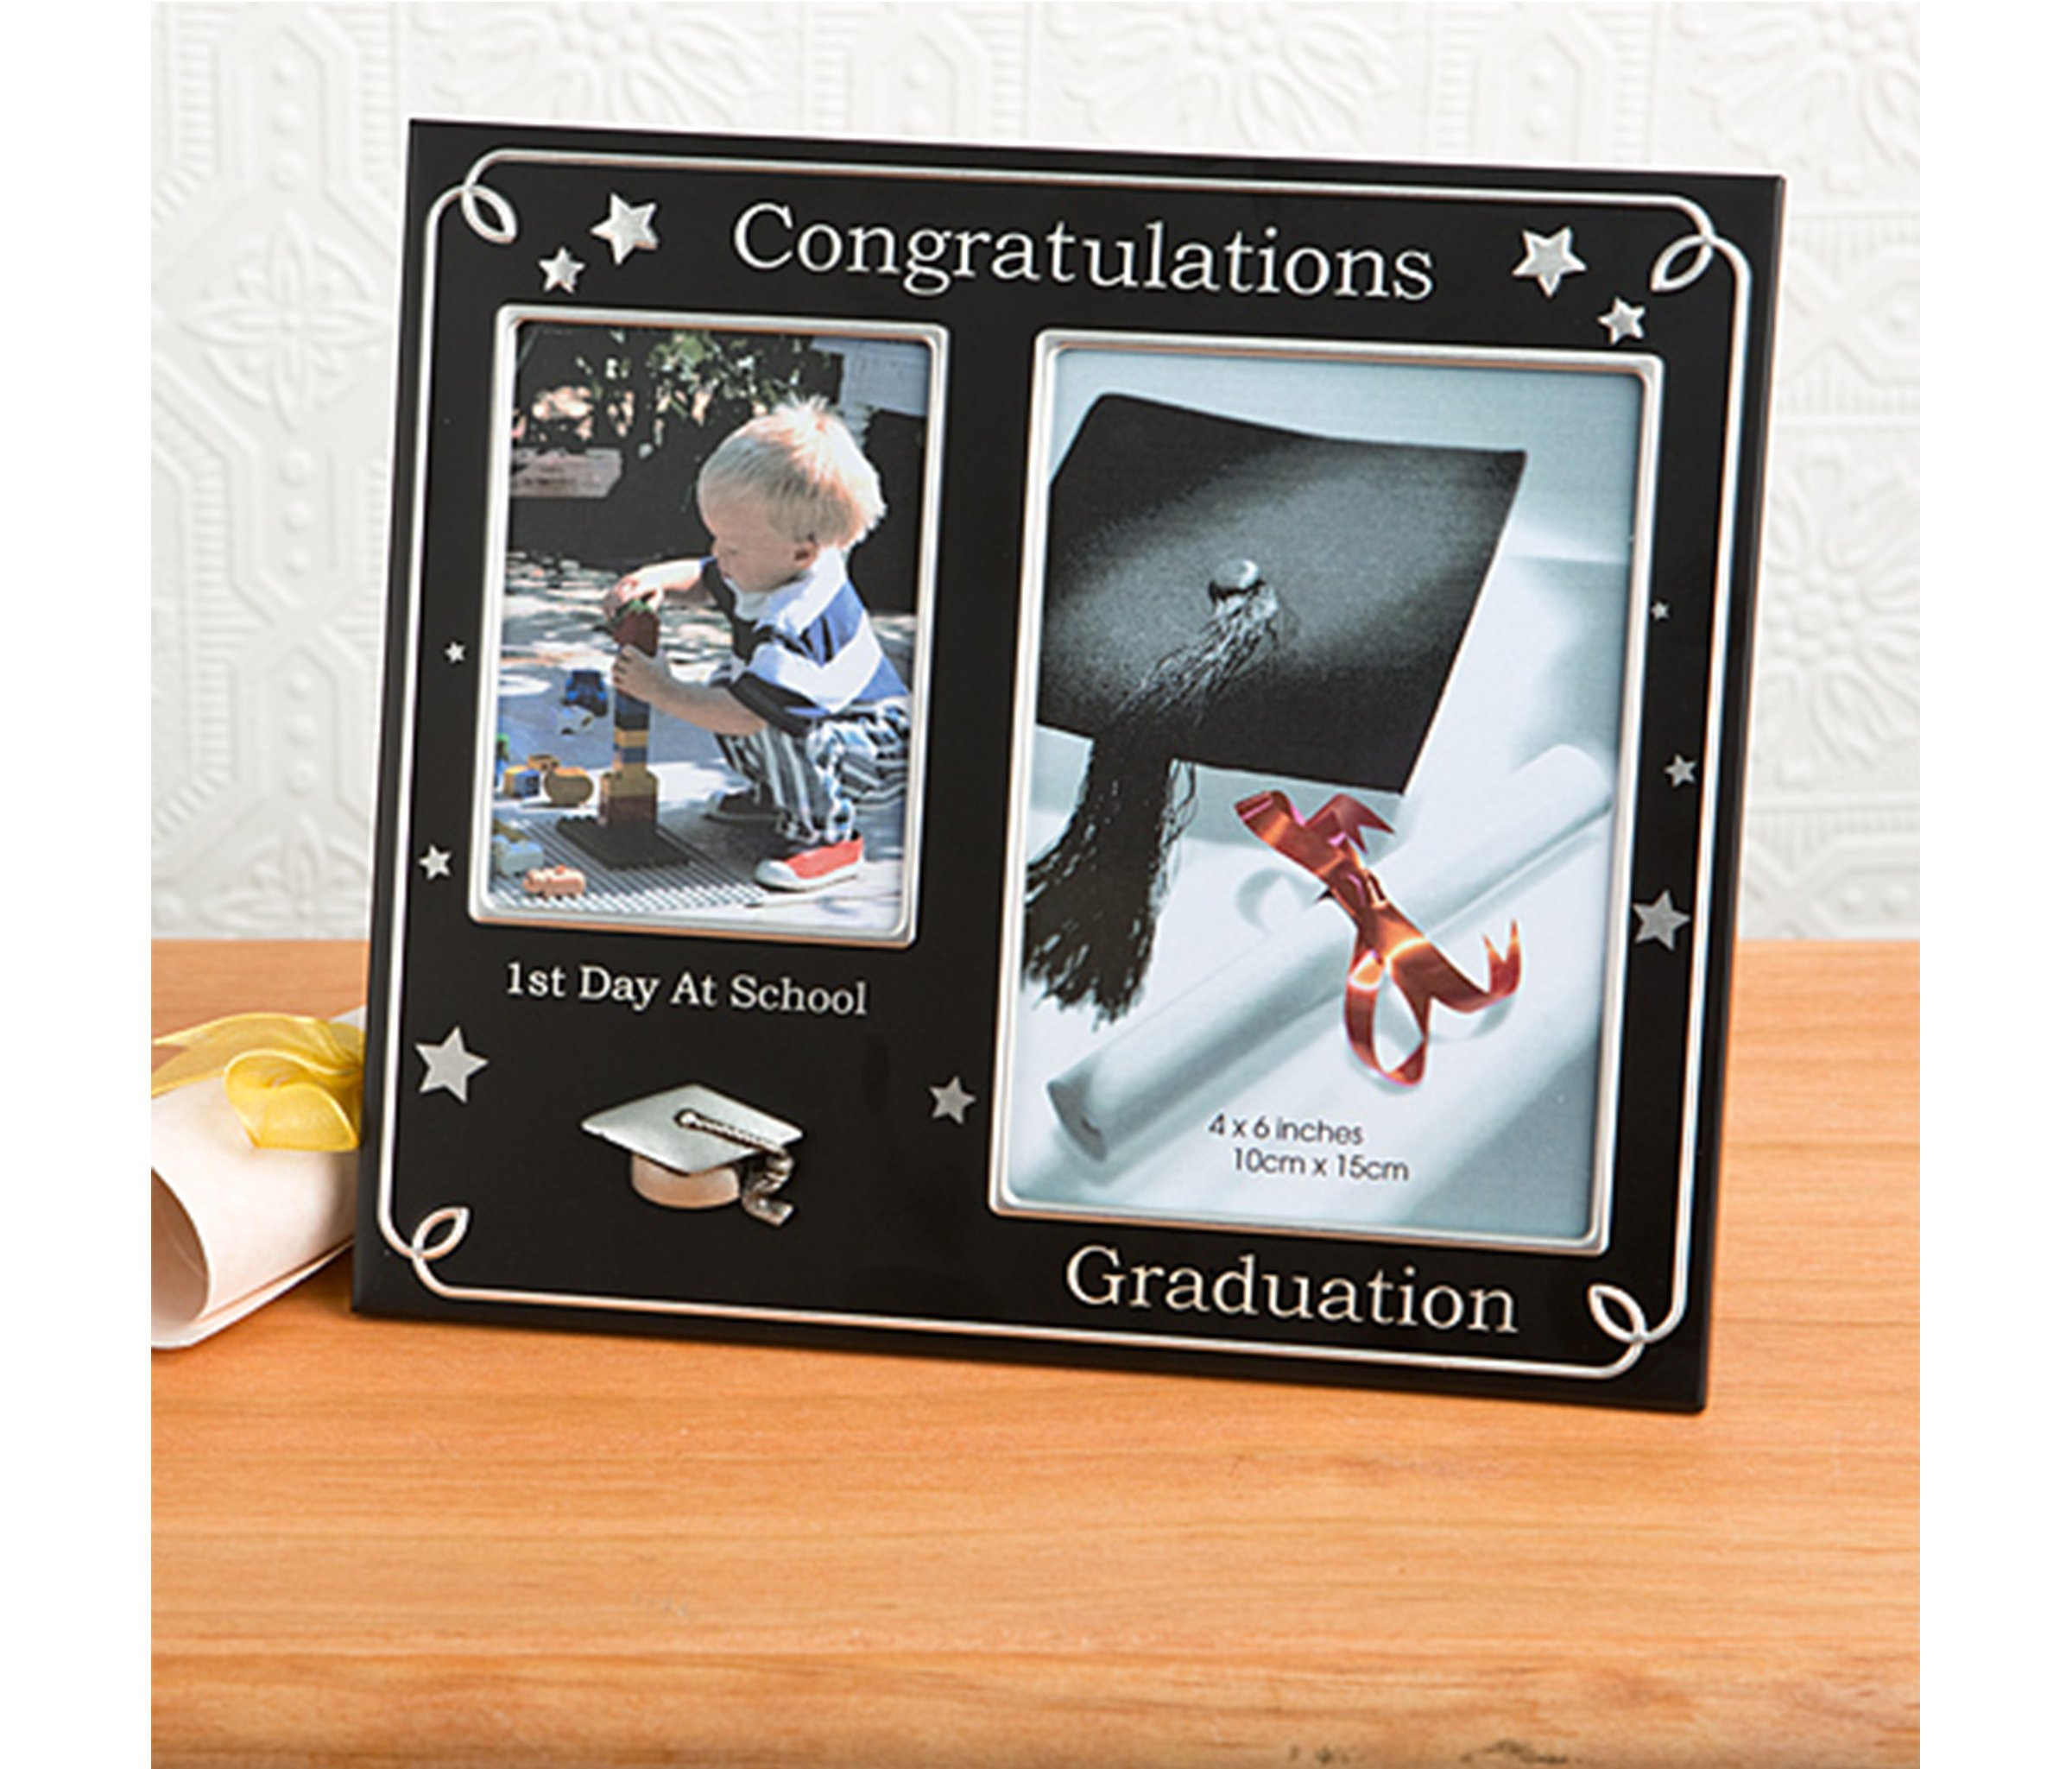 Mozlly Multipack - Fashioncraft Black First Day of School and Graduation 4x6 Photo Frame - 8.25 x 7.25 inch - Holds 4x6 and 3.75x2.75 photos - Silver Accents - 3D Cap Accent - Home Accents (Pack of 6)